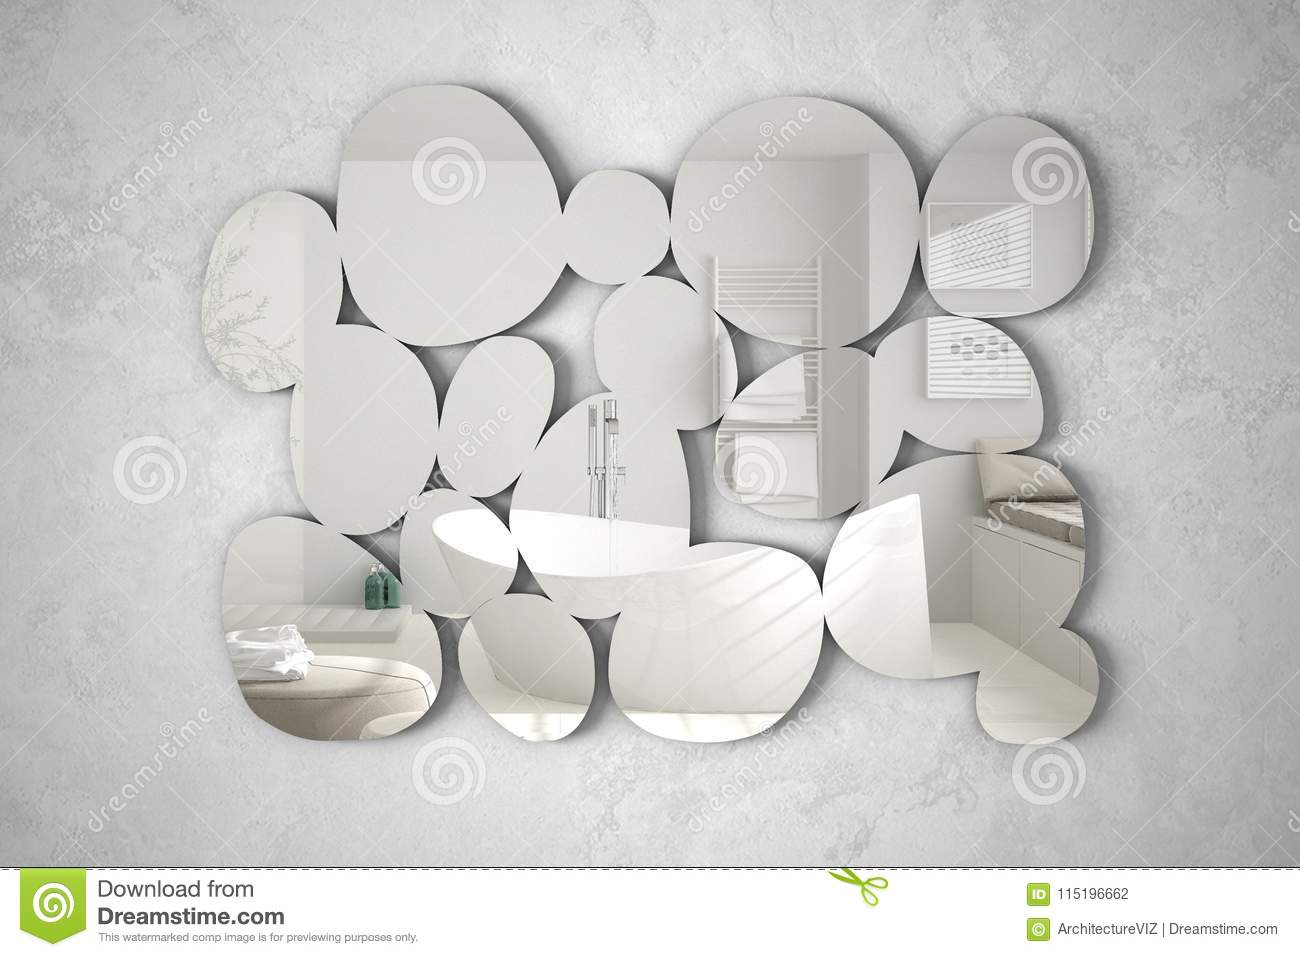 Modern Mirror In The Shape Of Pebbles Hanging On The Wall Reflecting